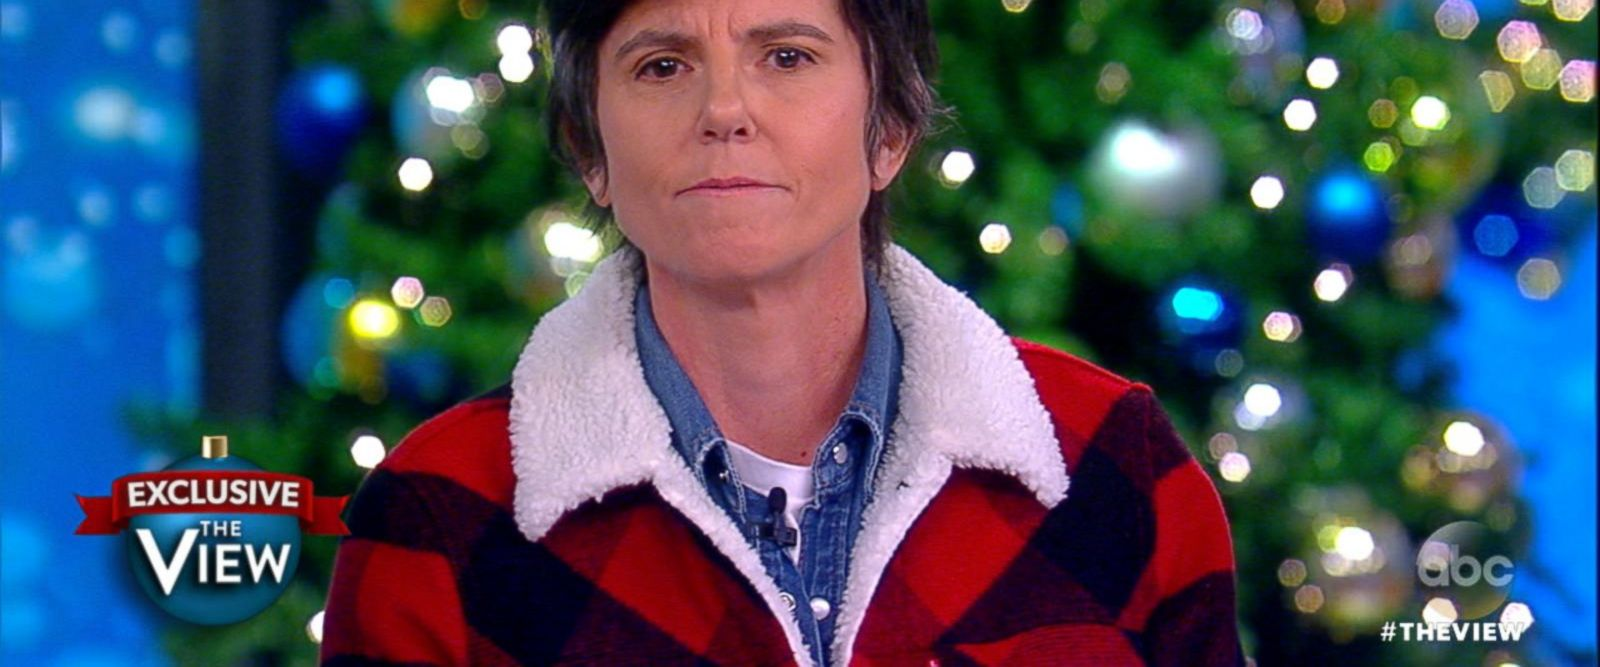 VIDEO: Comedian Tig Notaro opens up about Louis C.K.'s ousting